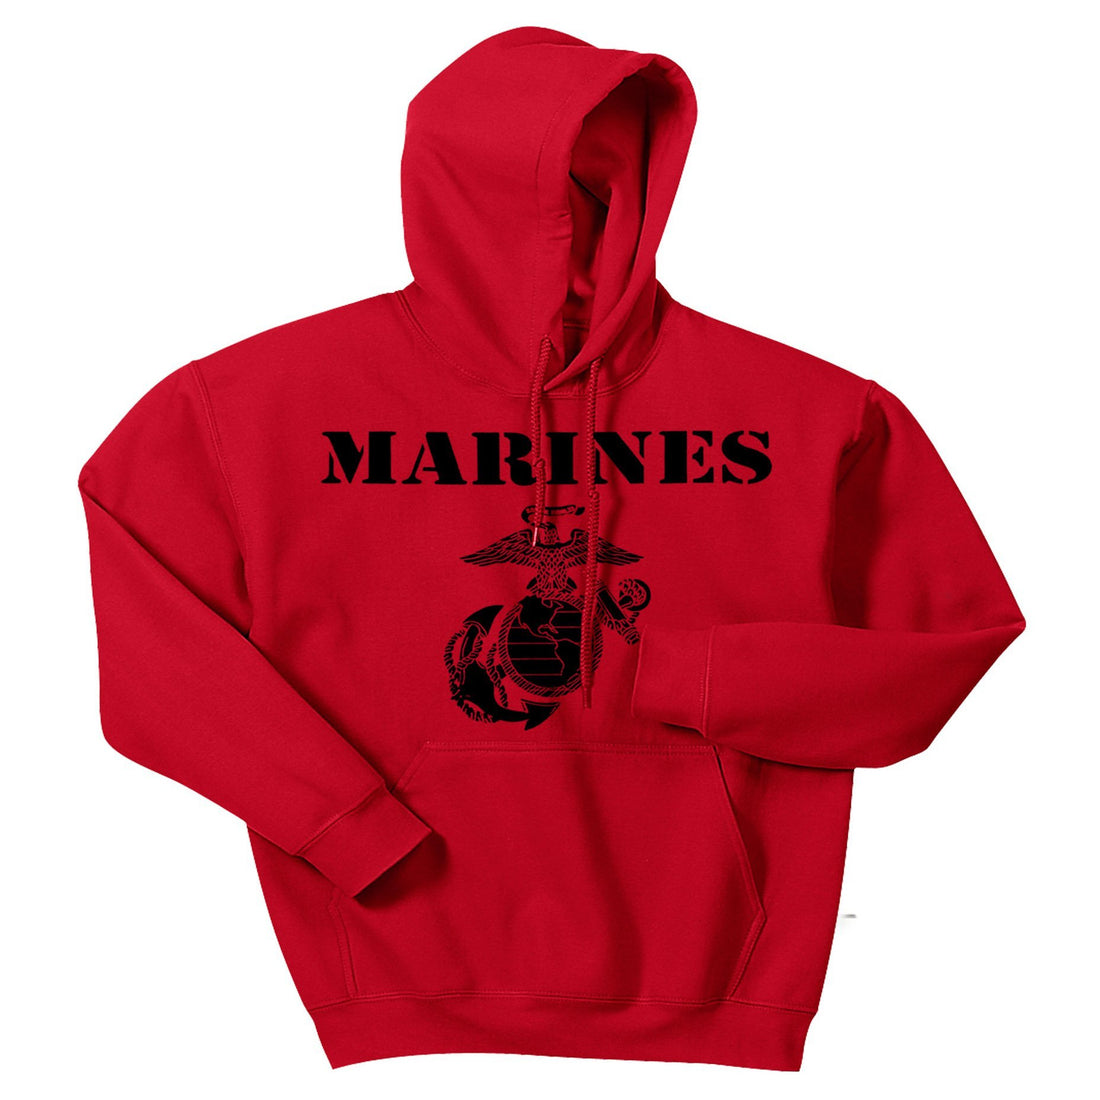 Vintage Marines Hoodie (CPT's SPECIAL Extra $8 Discount) - Marine Corps Direct